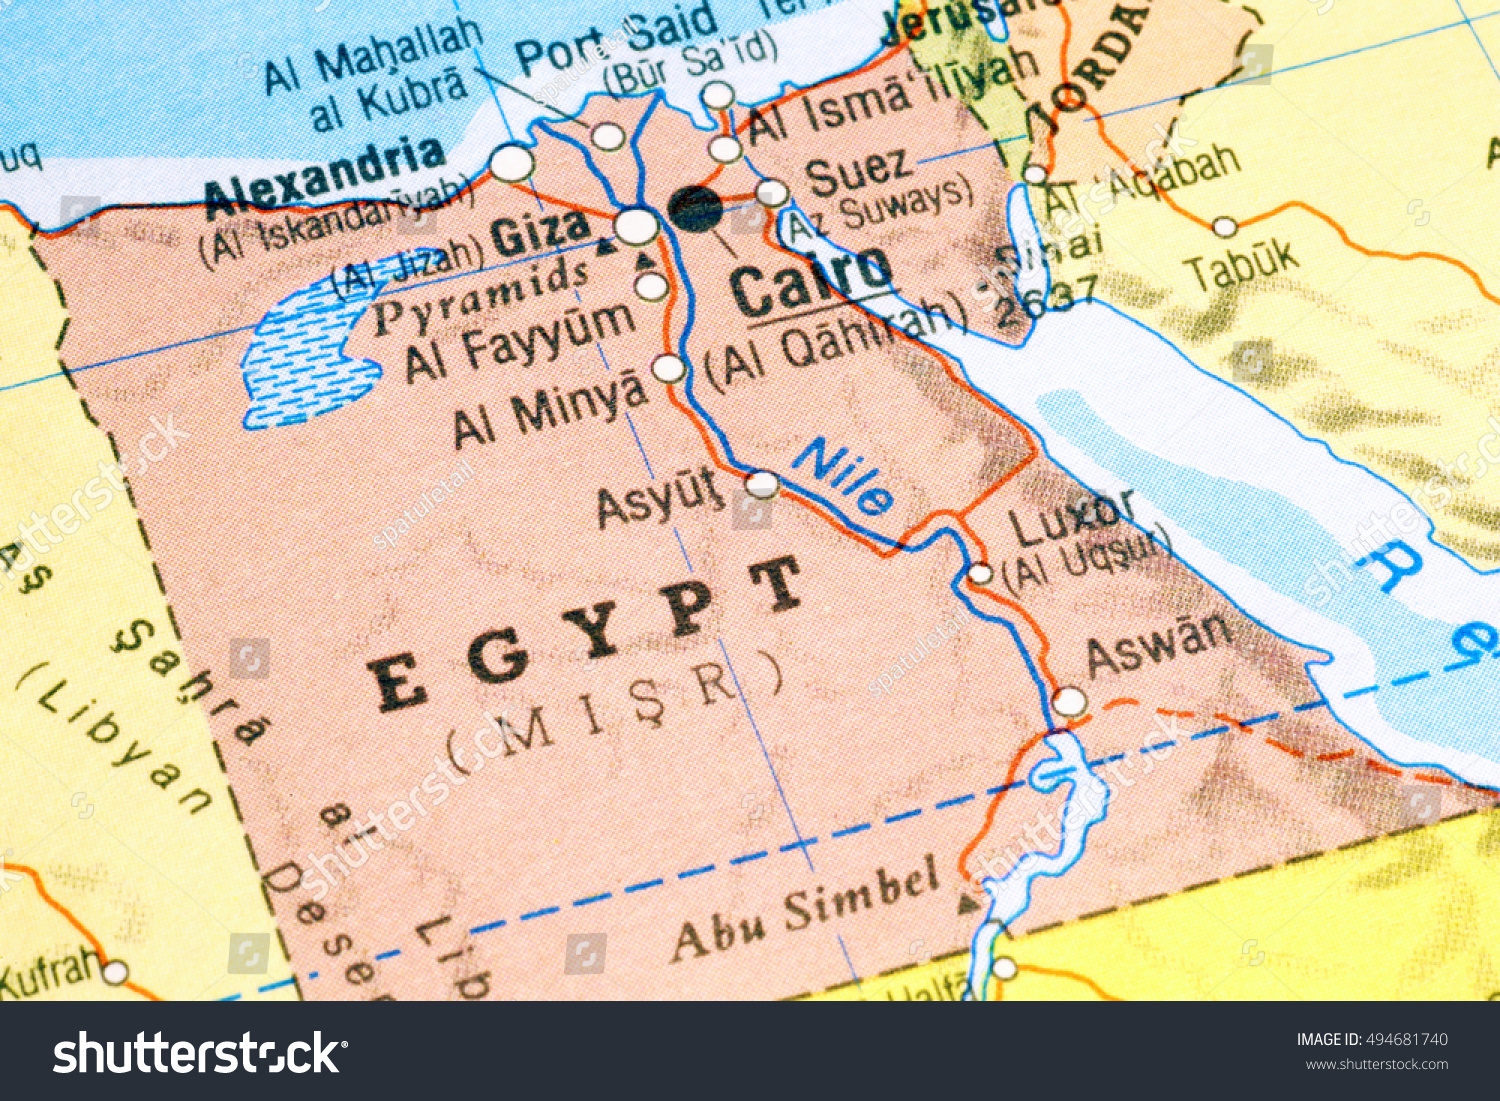 Milan italy may 10 2016 map stock photo download now 494681740 milan italy may 10 2016 map of egypt gumiabroncs Images